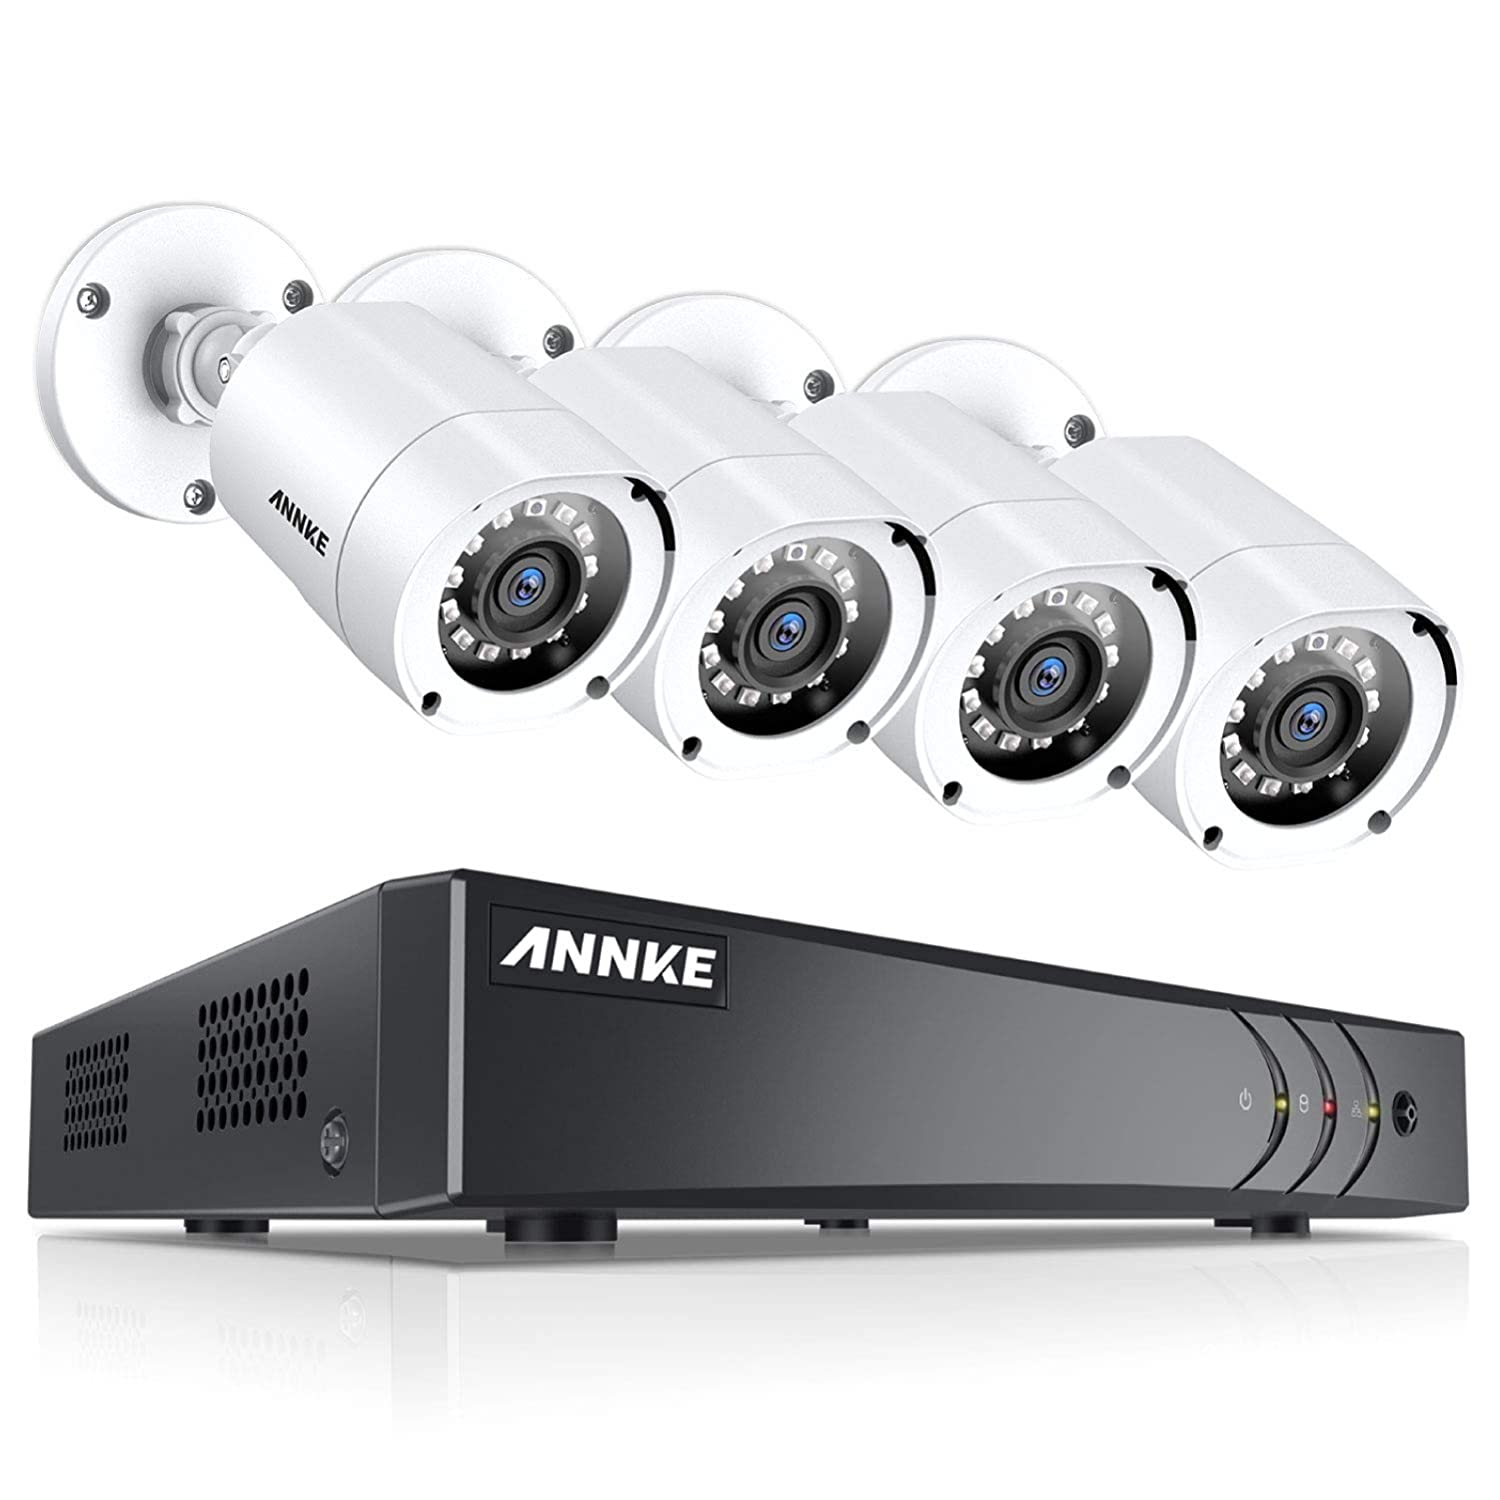 ANNKE 32CH 5in1 CCTV 1080P H.264 DVR Recorder for Security Camera System w// 1TB